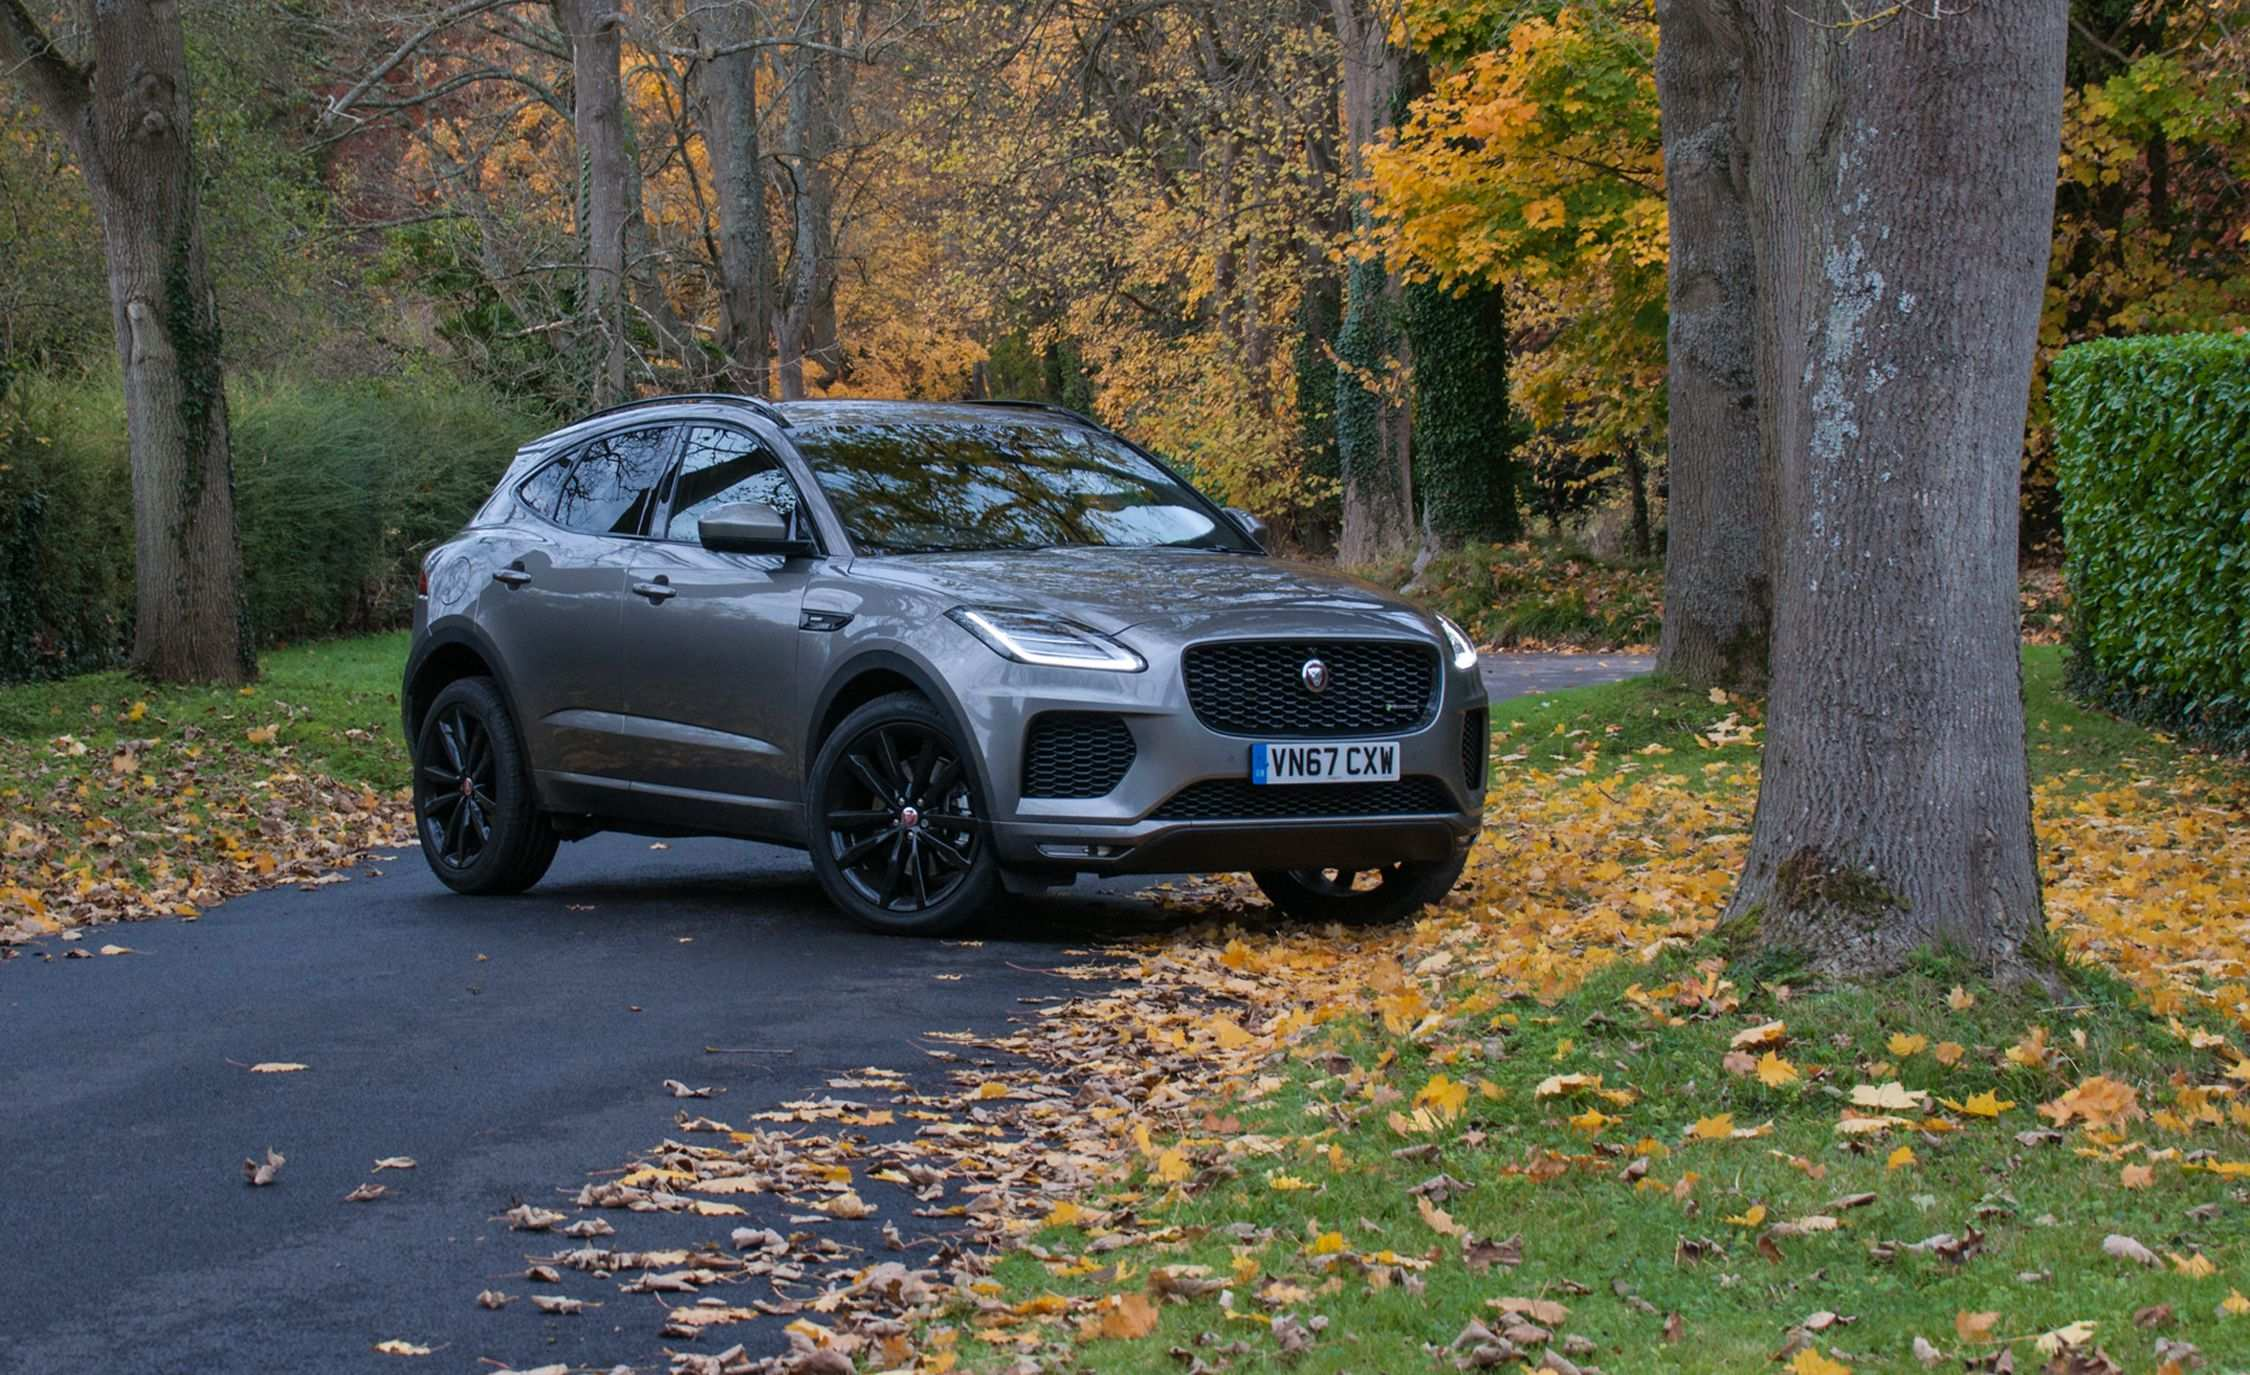 39 Best Review Jaguar E Pace Ibrida 2020 Exterior and Interior by Jaguar E Pace Ibrida 2020